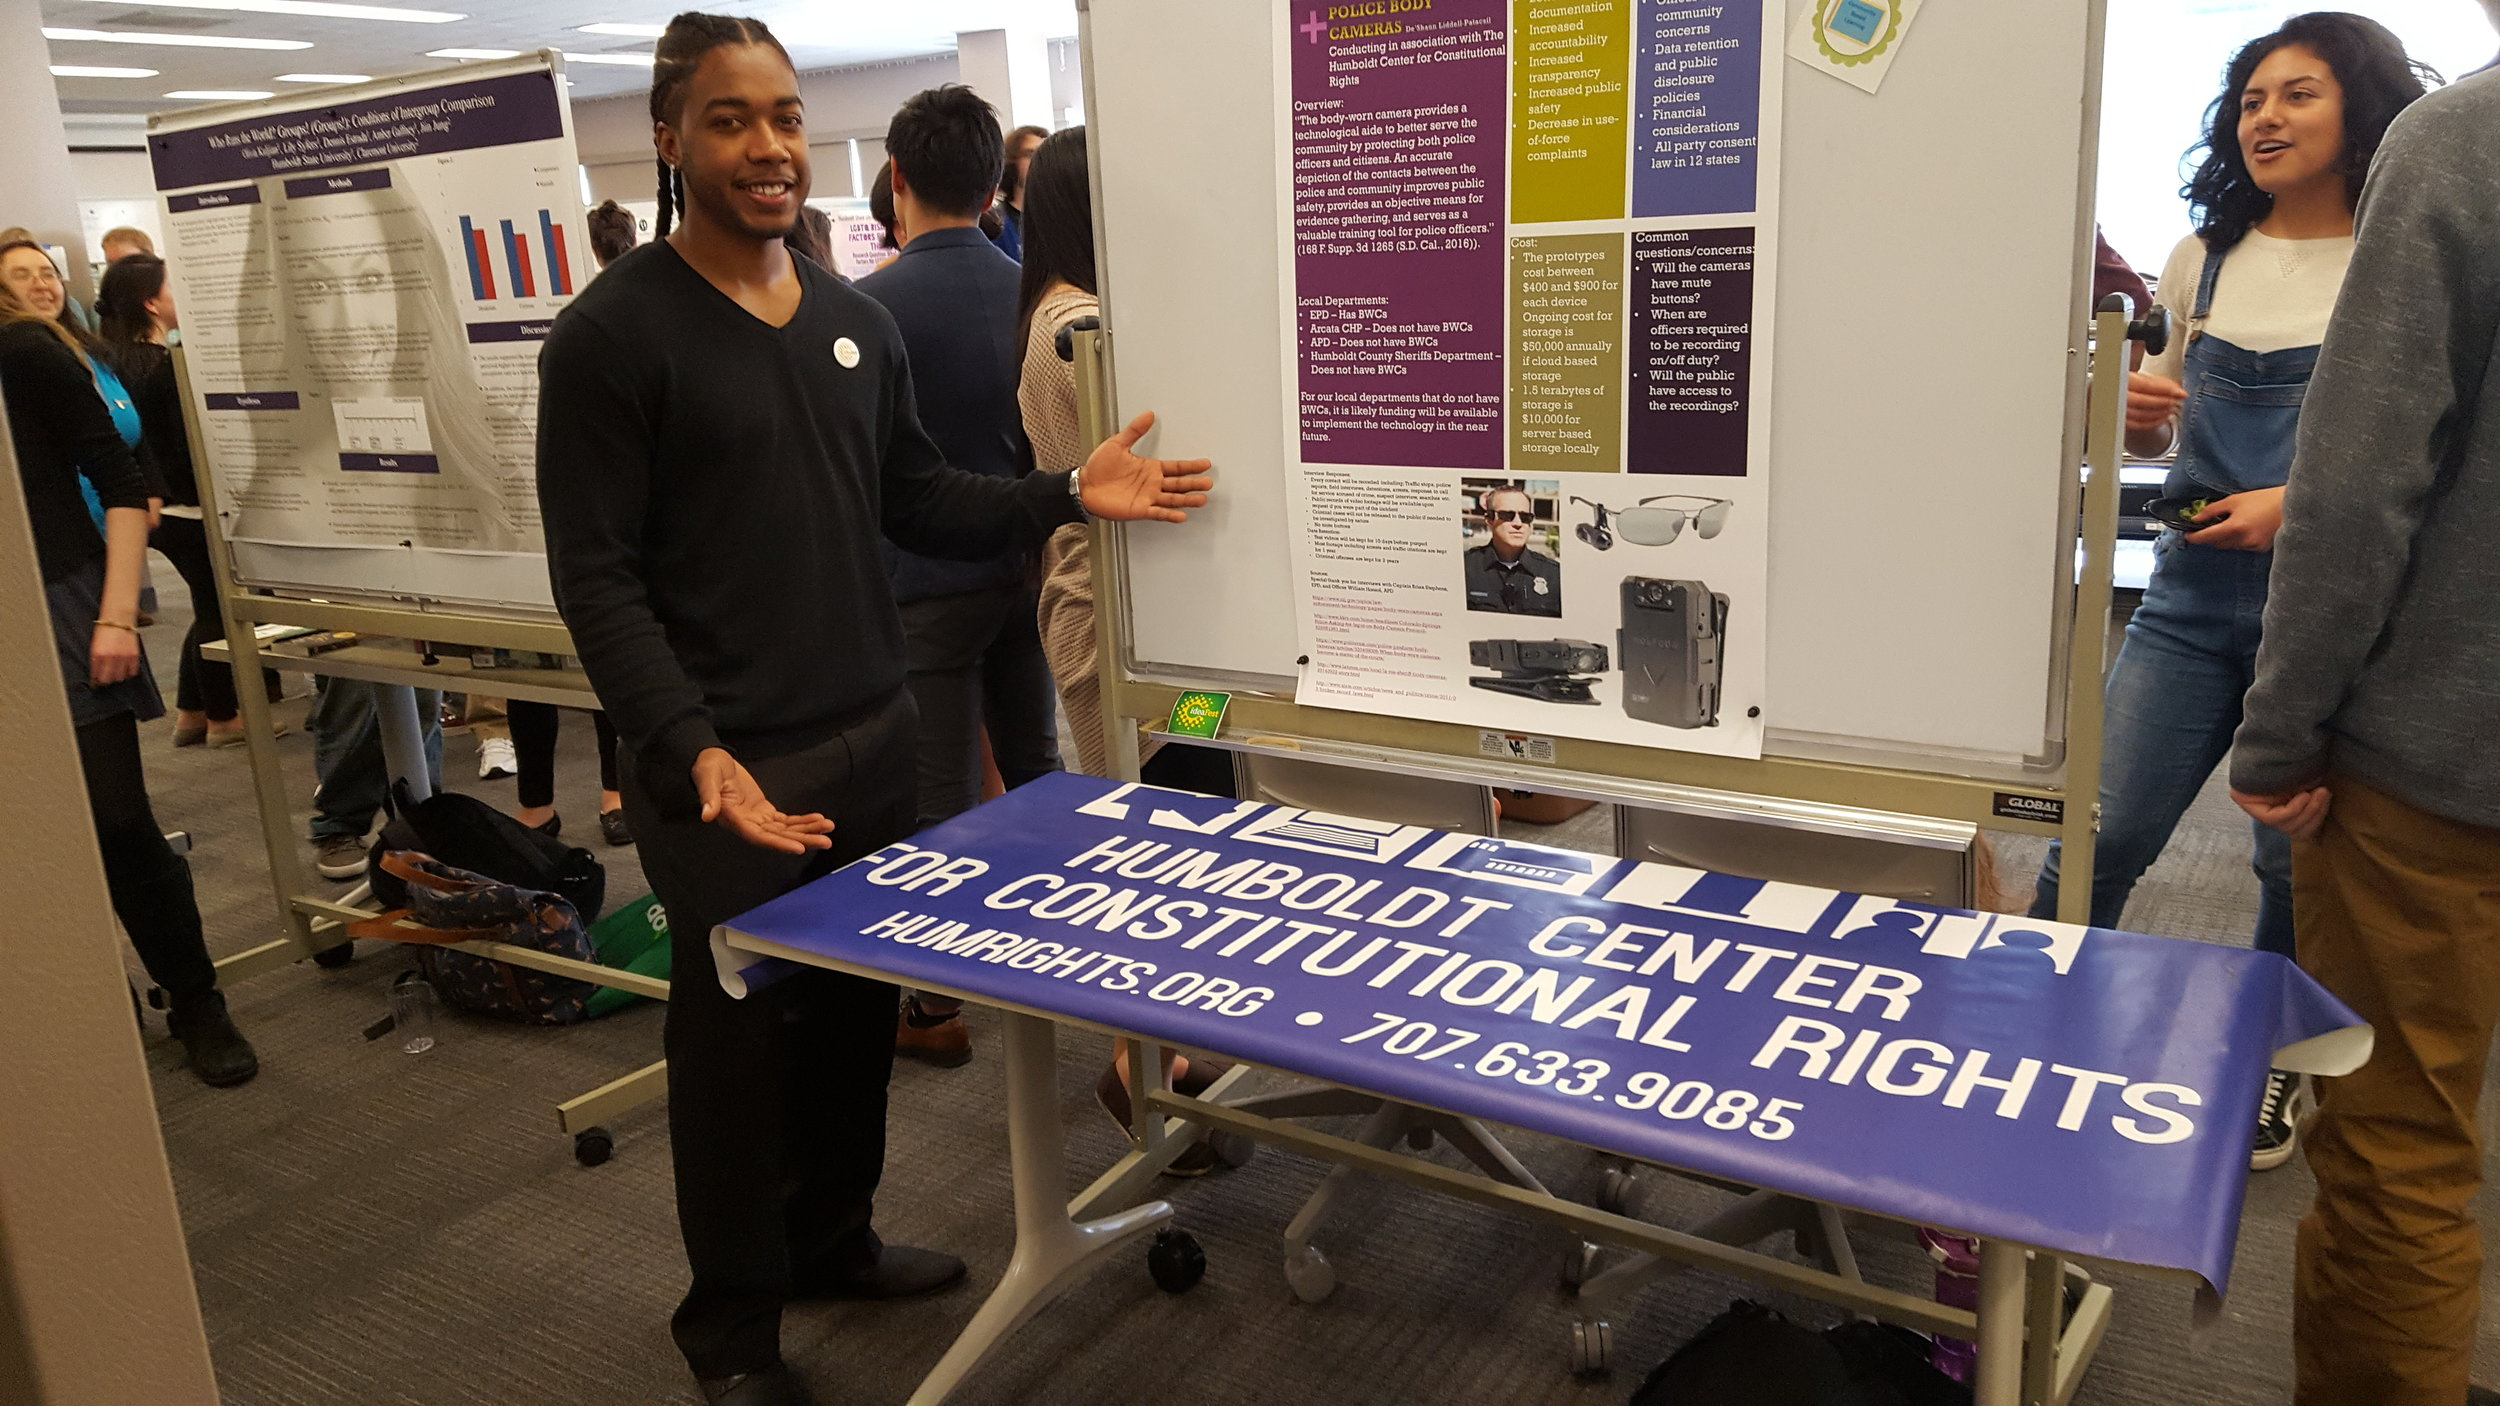 DeShaun Liddell-Patacsil with the presenting at the HSU Ideafest the research he did for HumRights on police body cams.